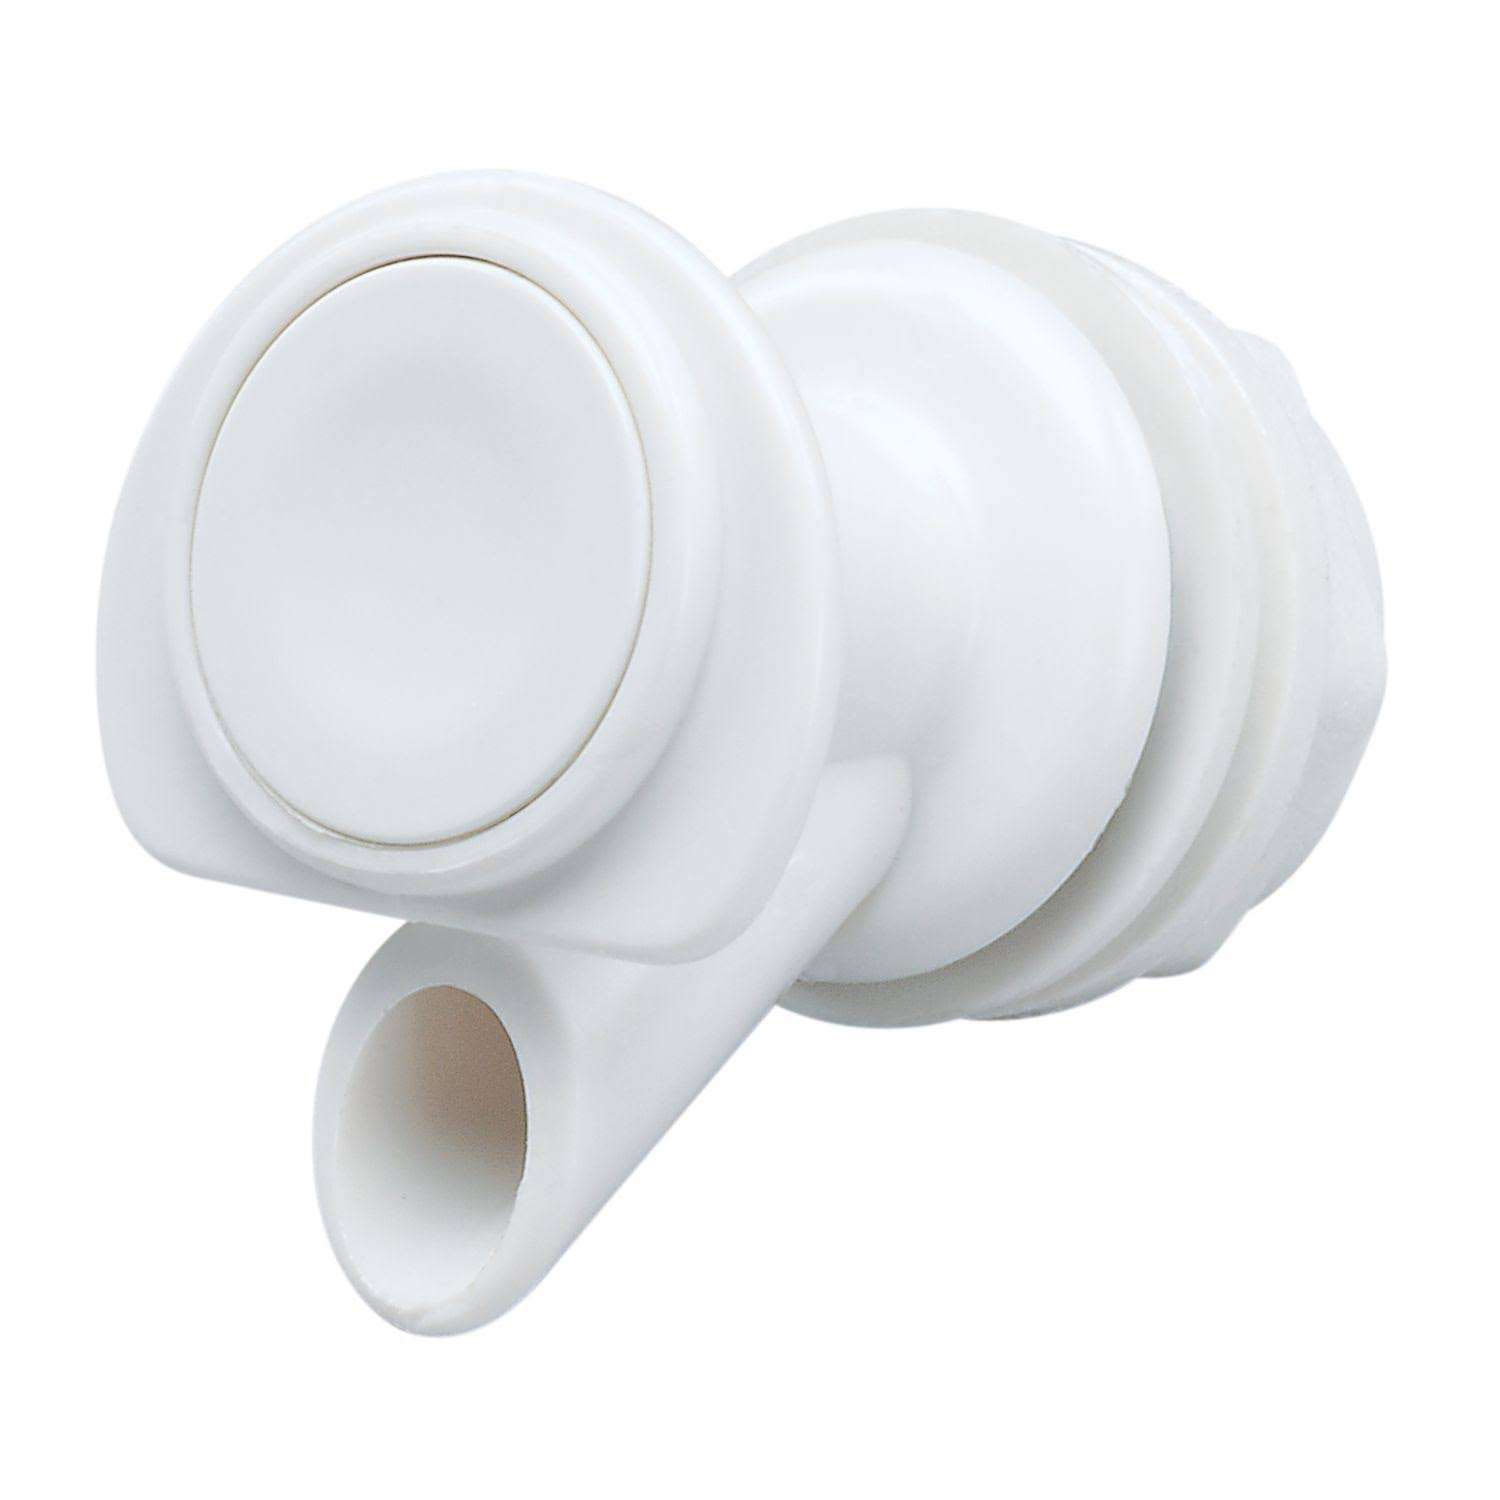 Igloo 24009 Replacement Water Cooler Spigot - White